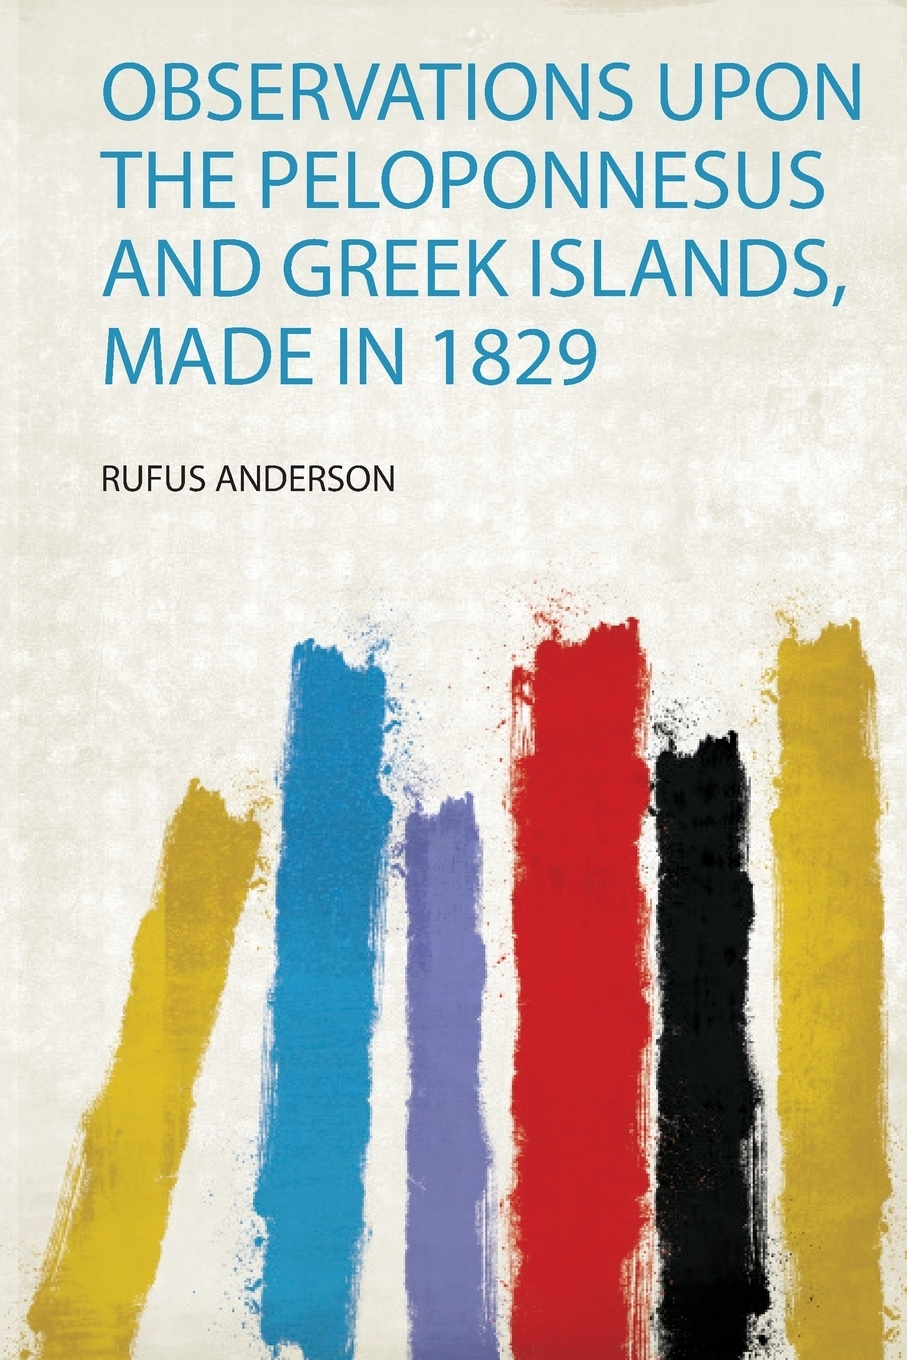 Observations Upon the Peloponnesus and Greek Islands, Made in 1829